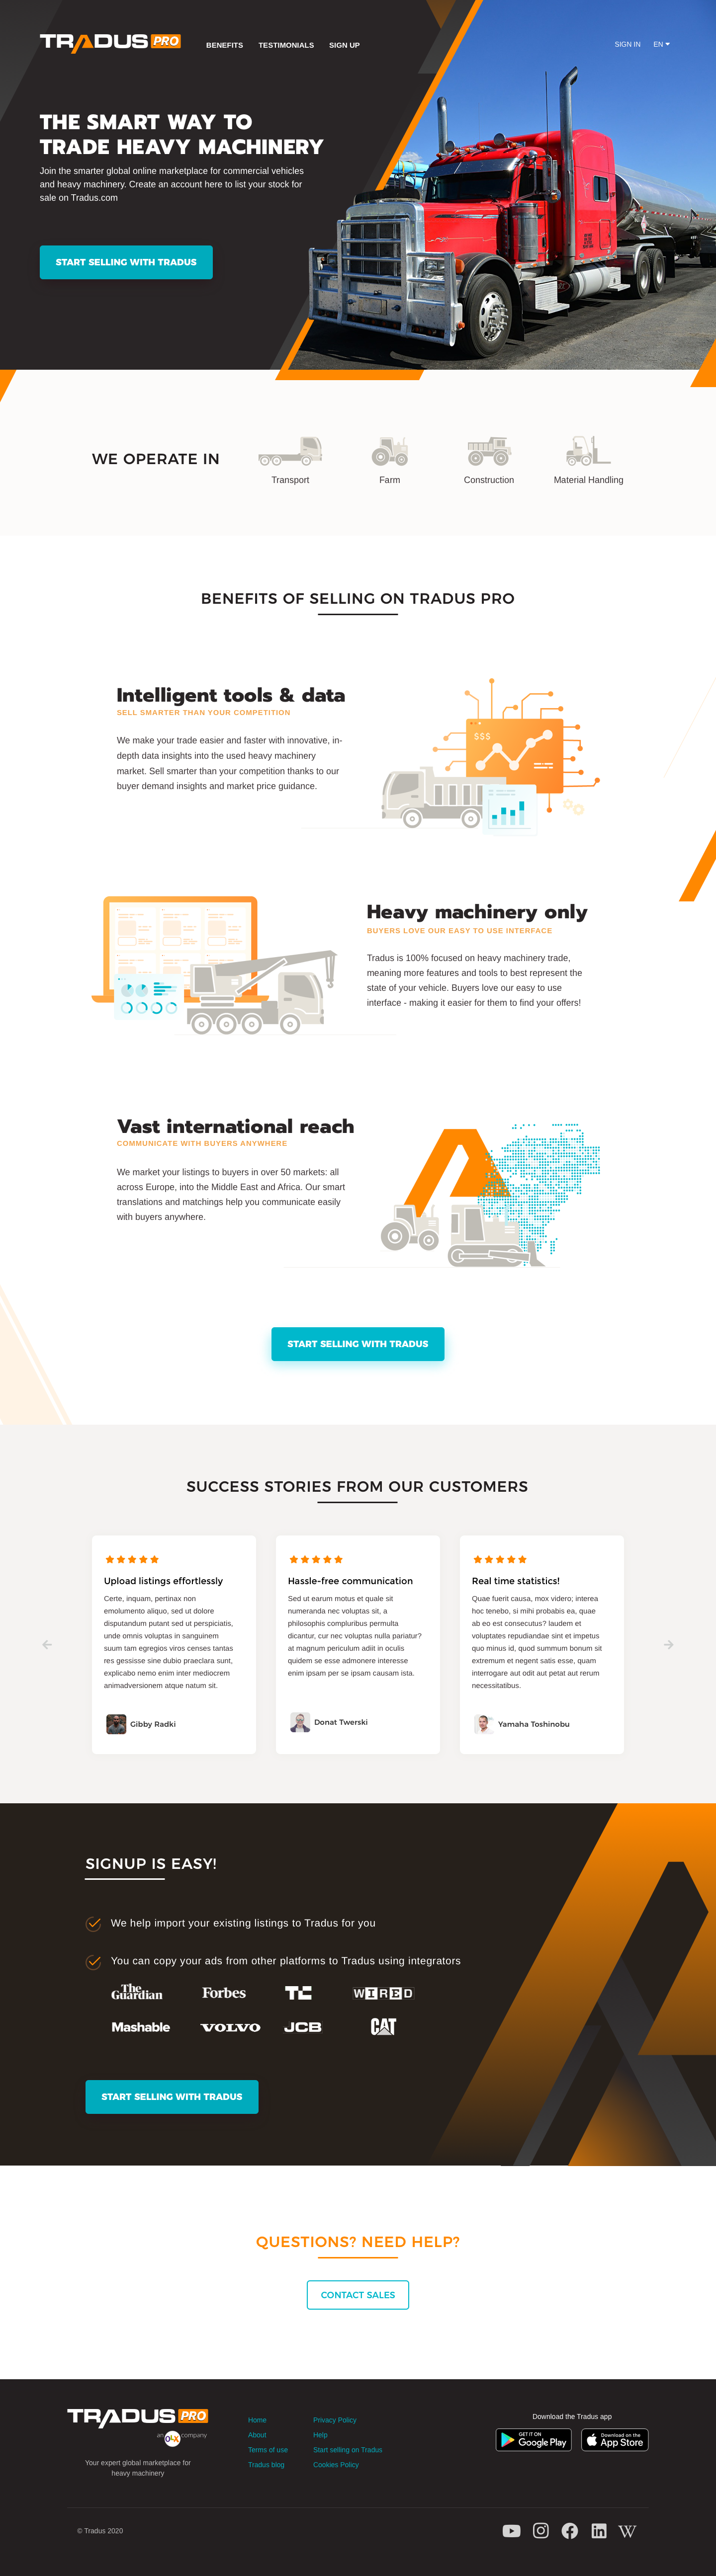 Landing page for sellers of used heavy machinery